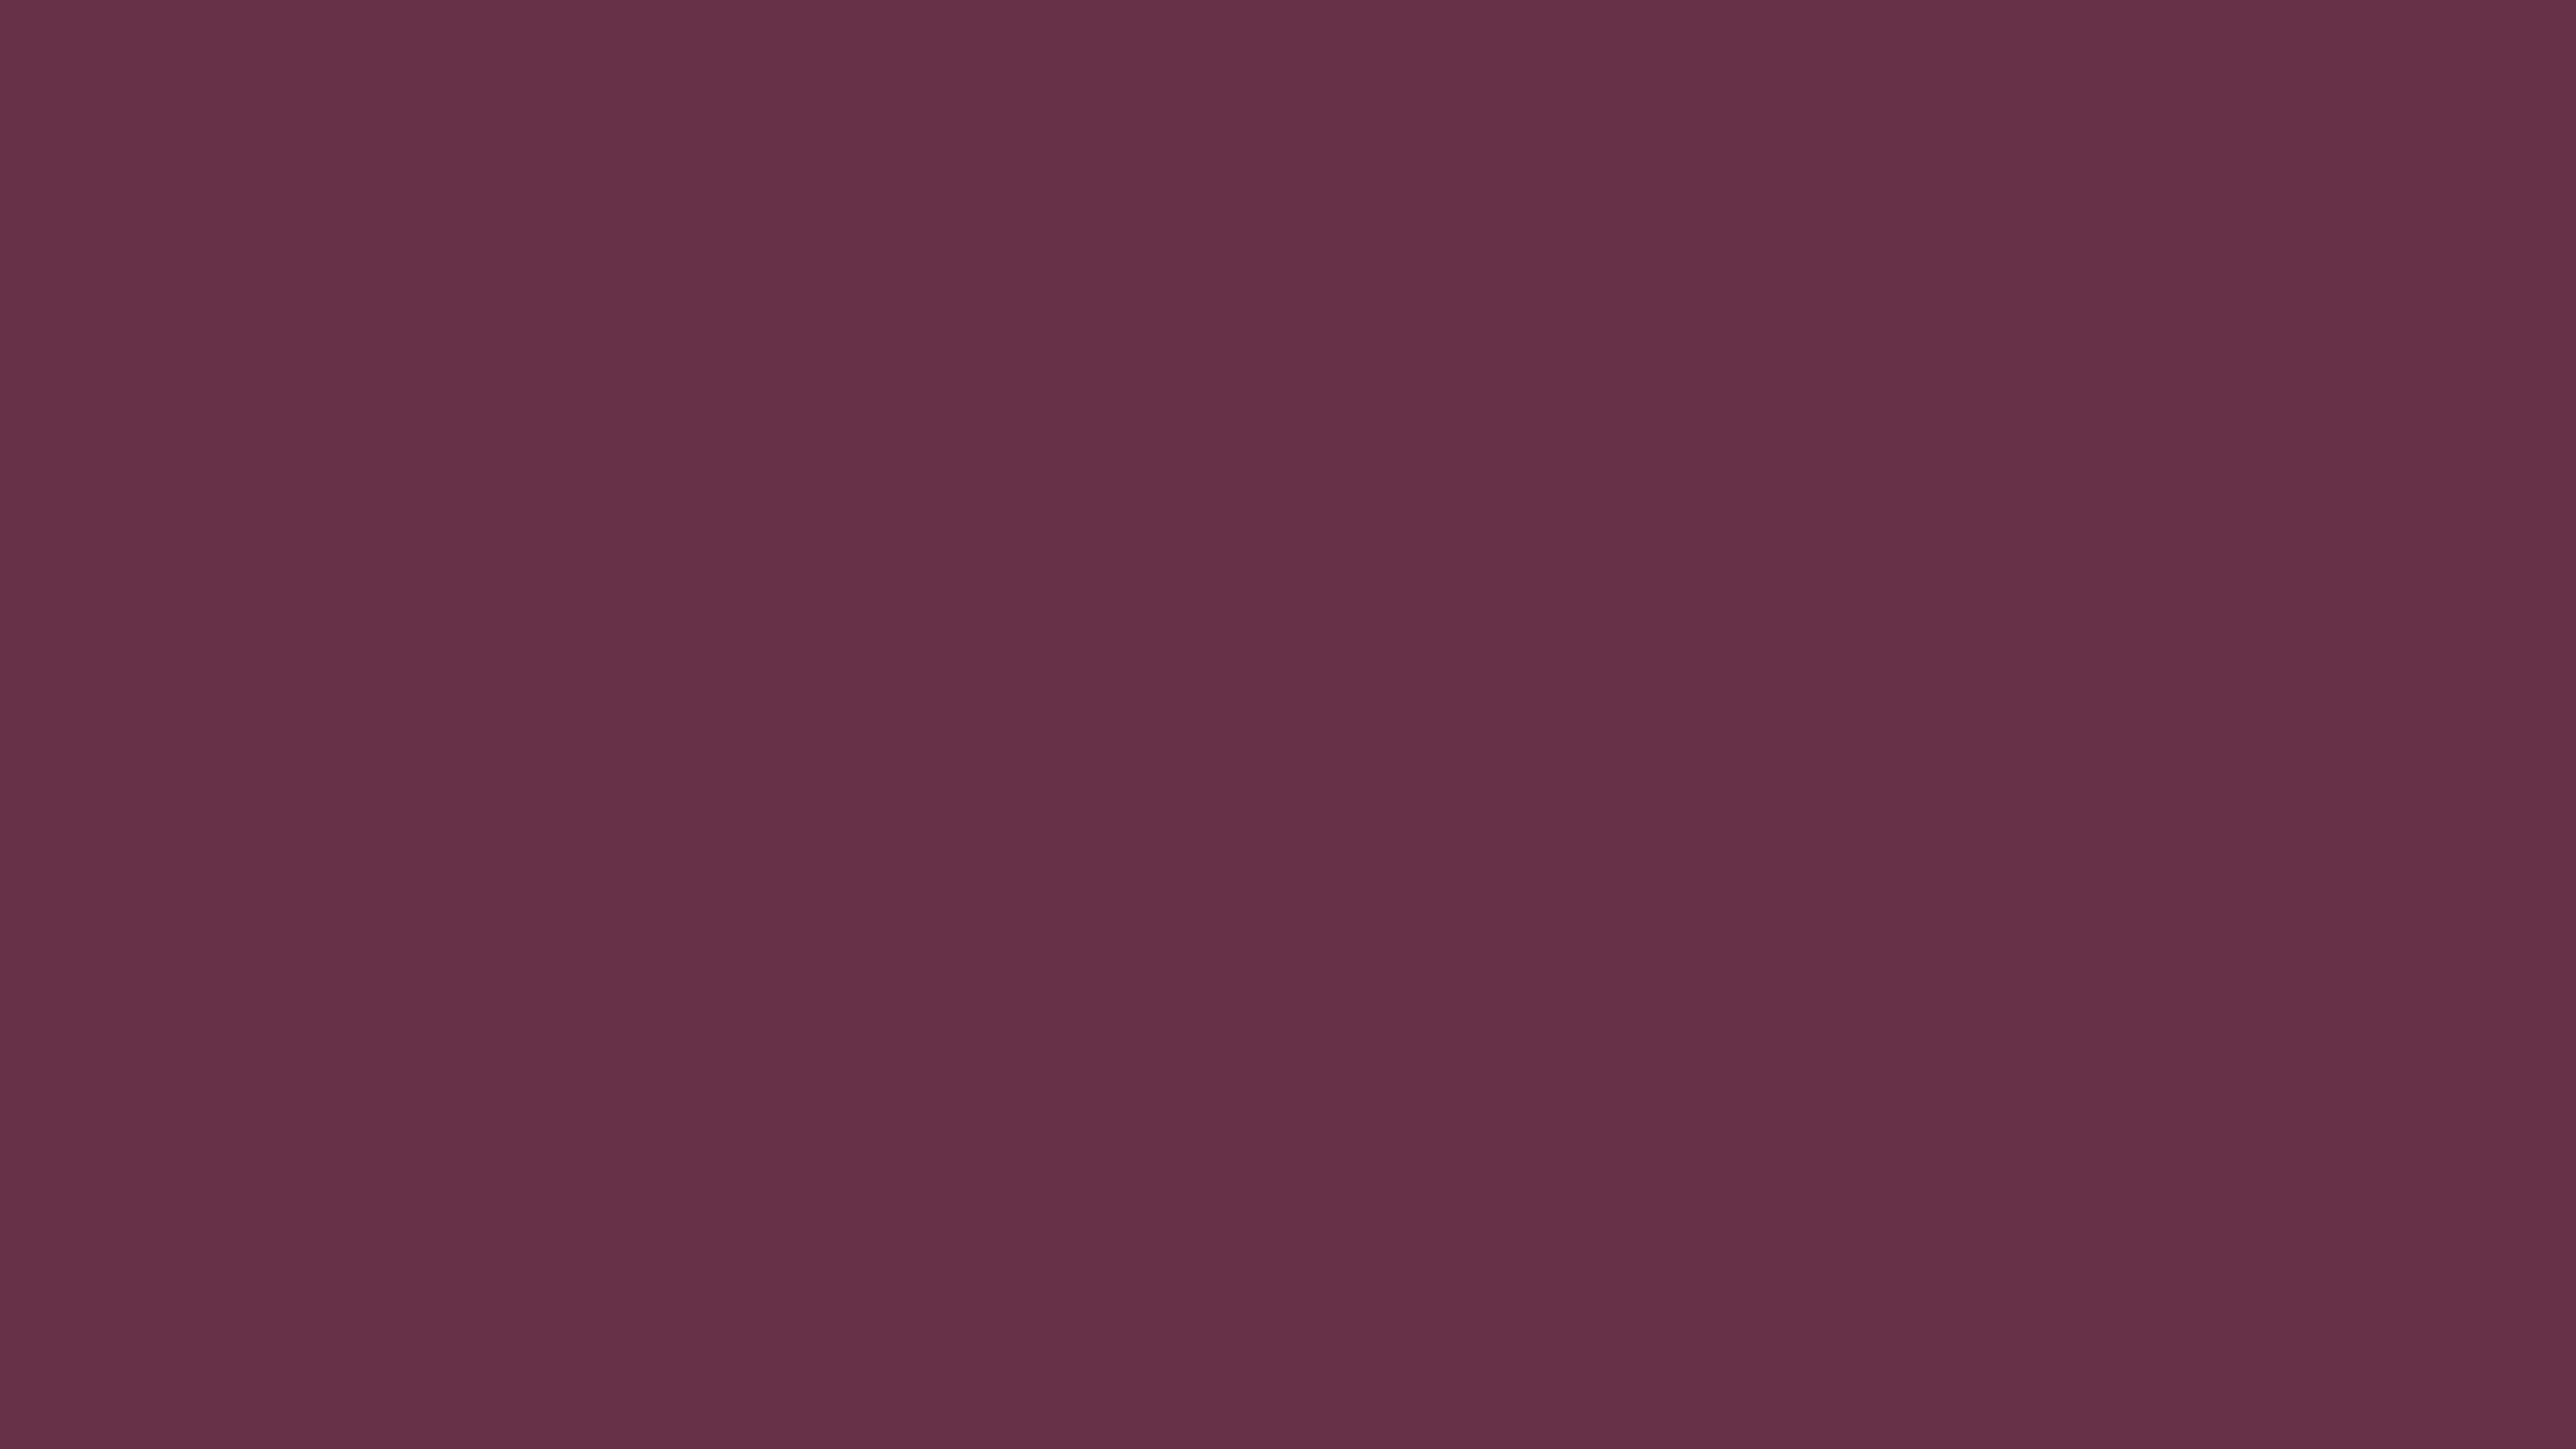 5120x2880 Old Mauve Solid Color Background